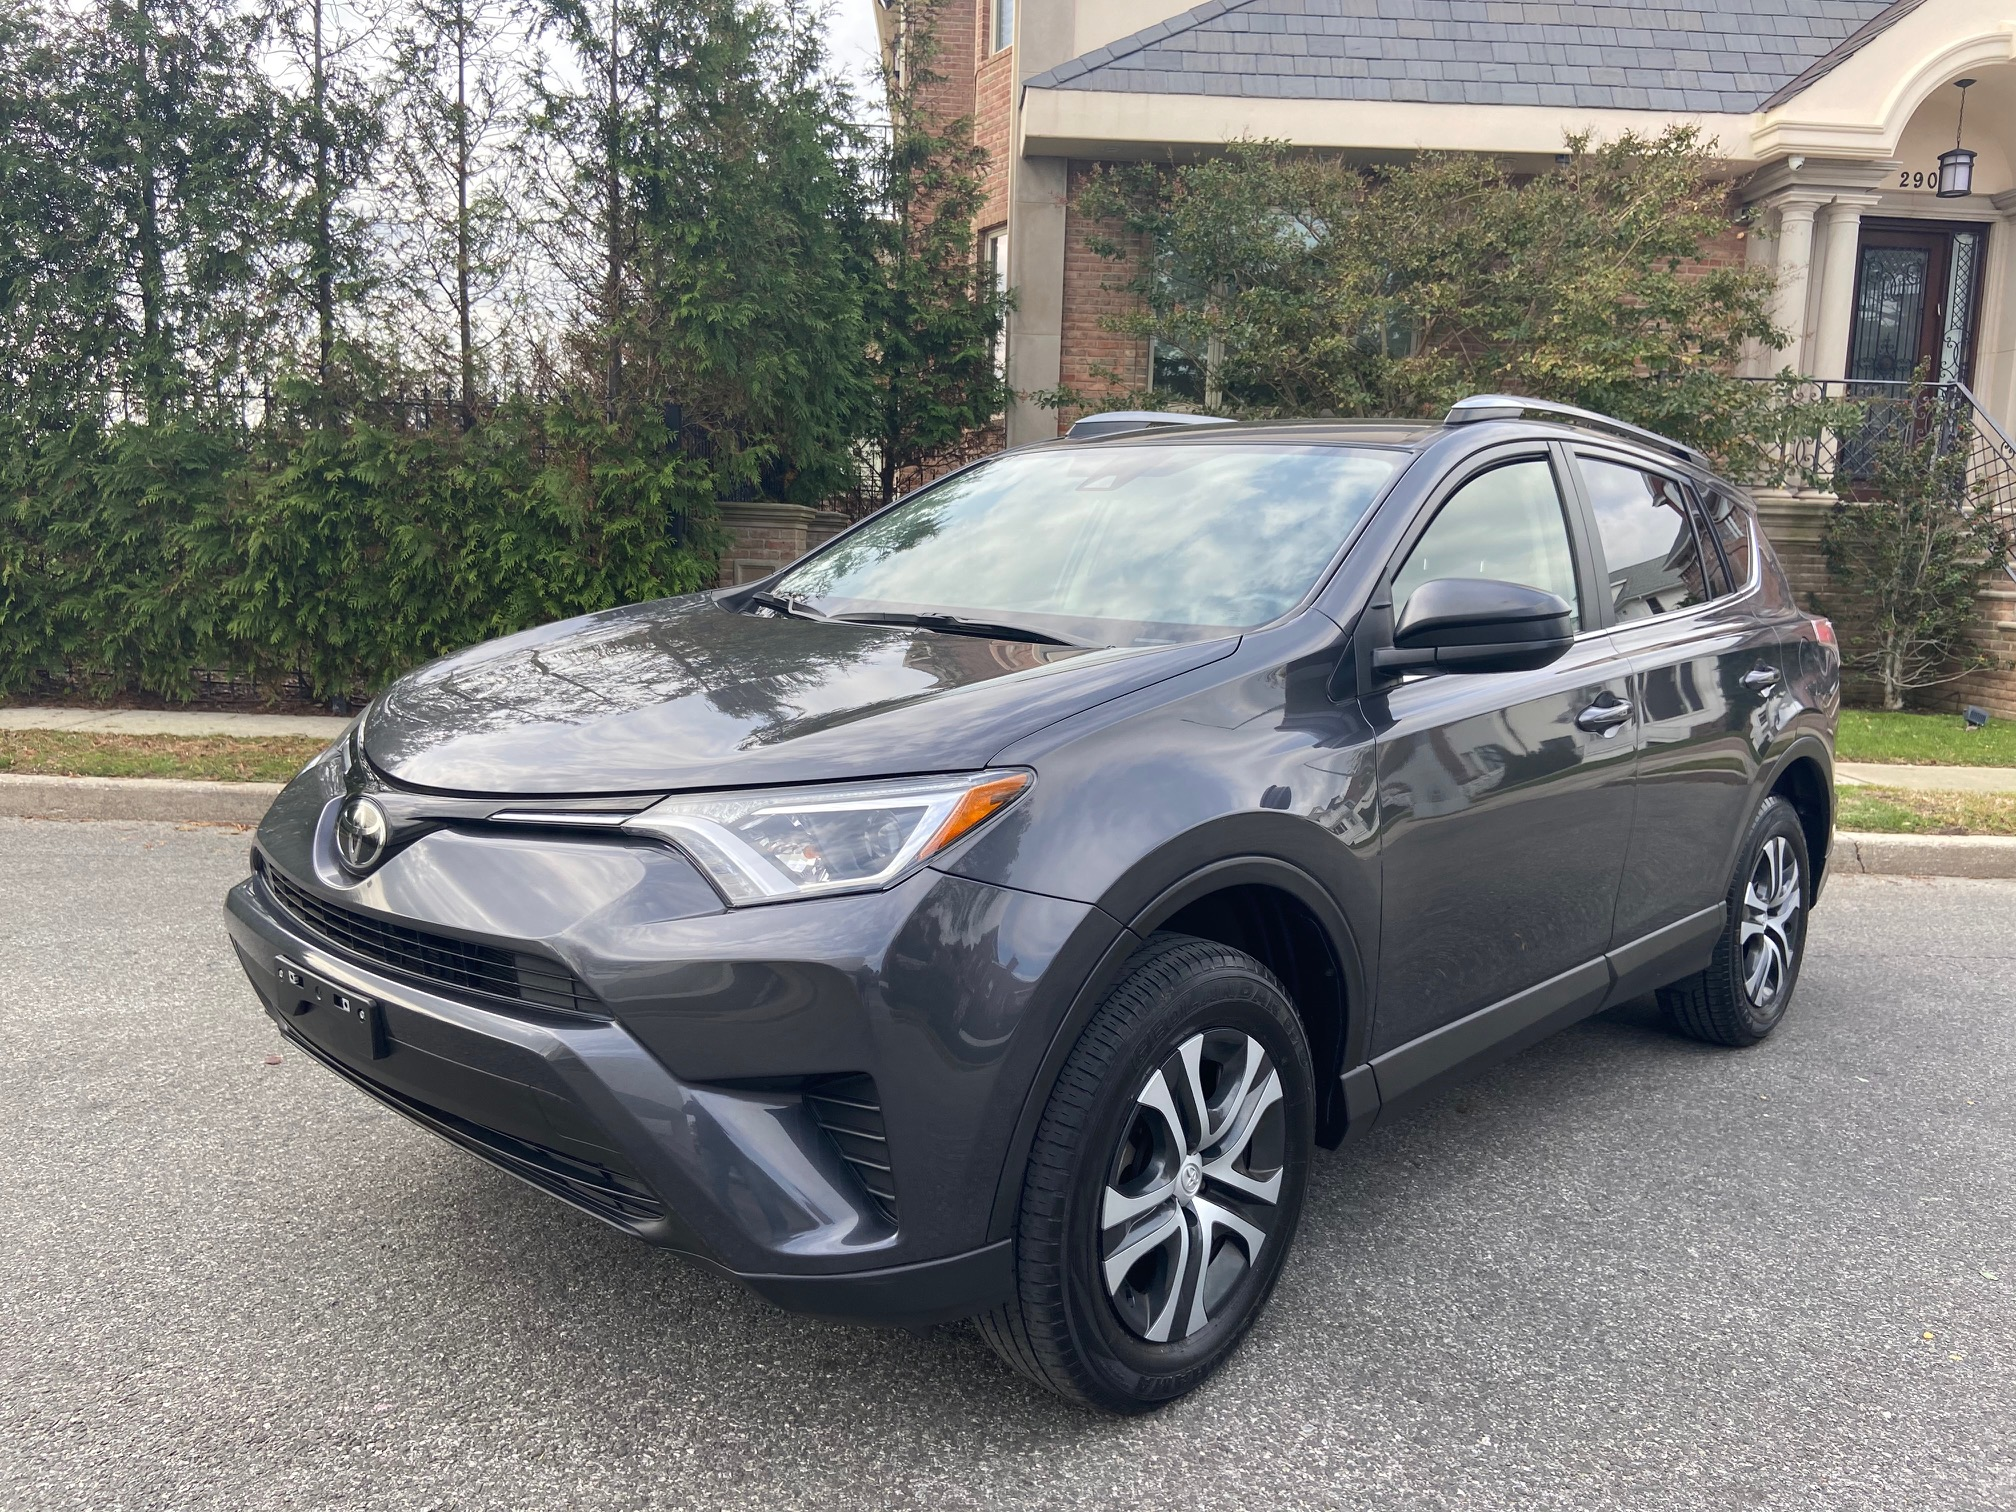 Used Car - 2018 Toyota RAV4 LE AWD for Sale in Staten Island, NY